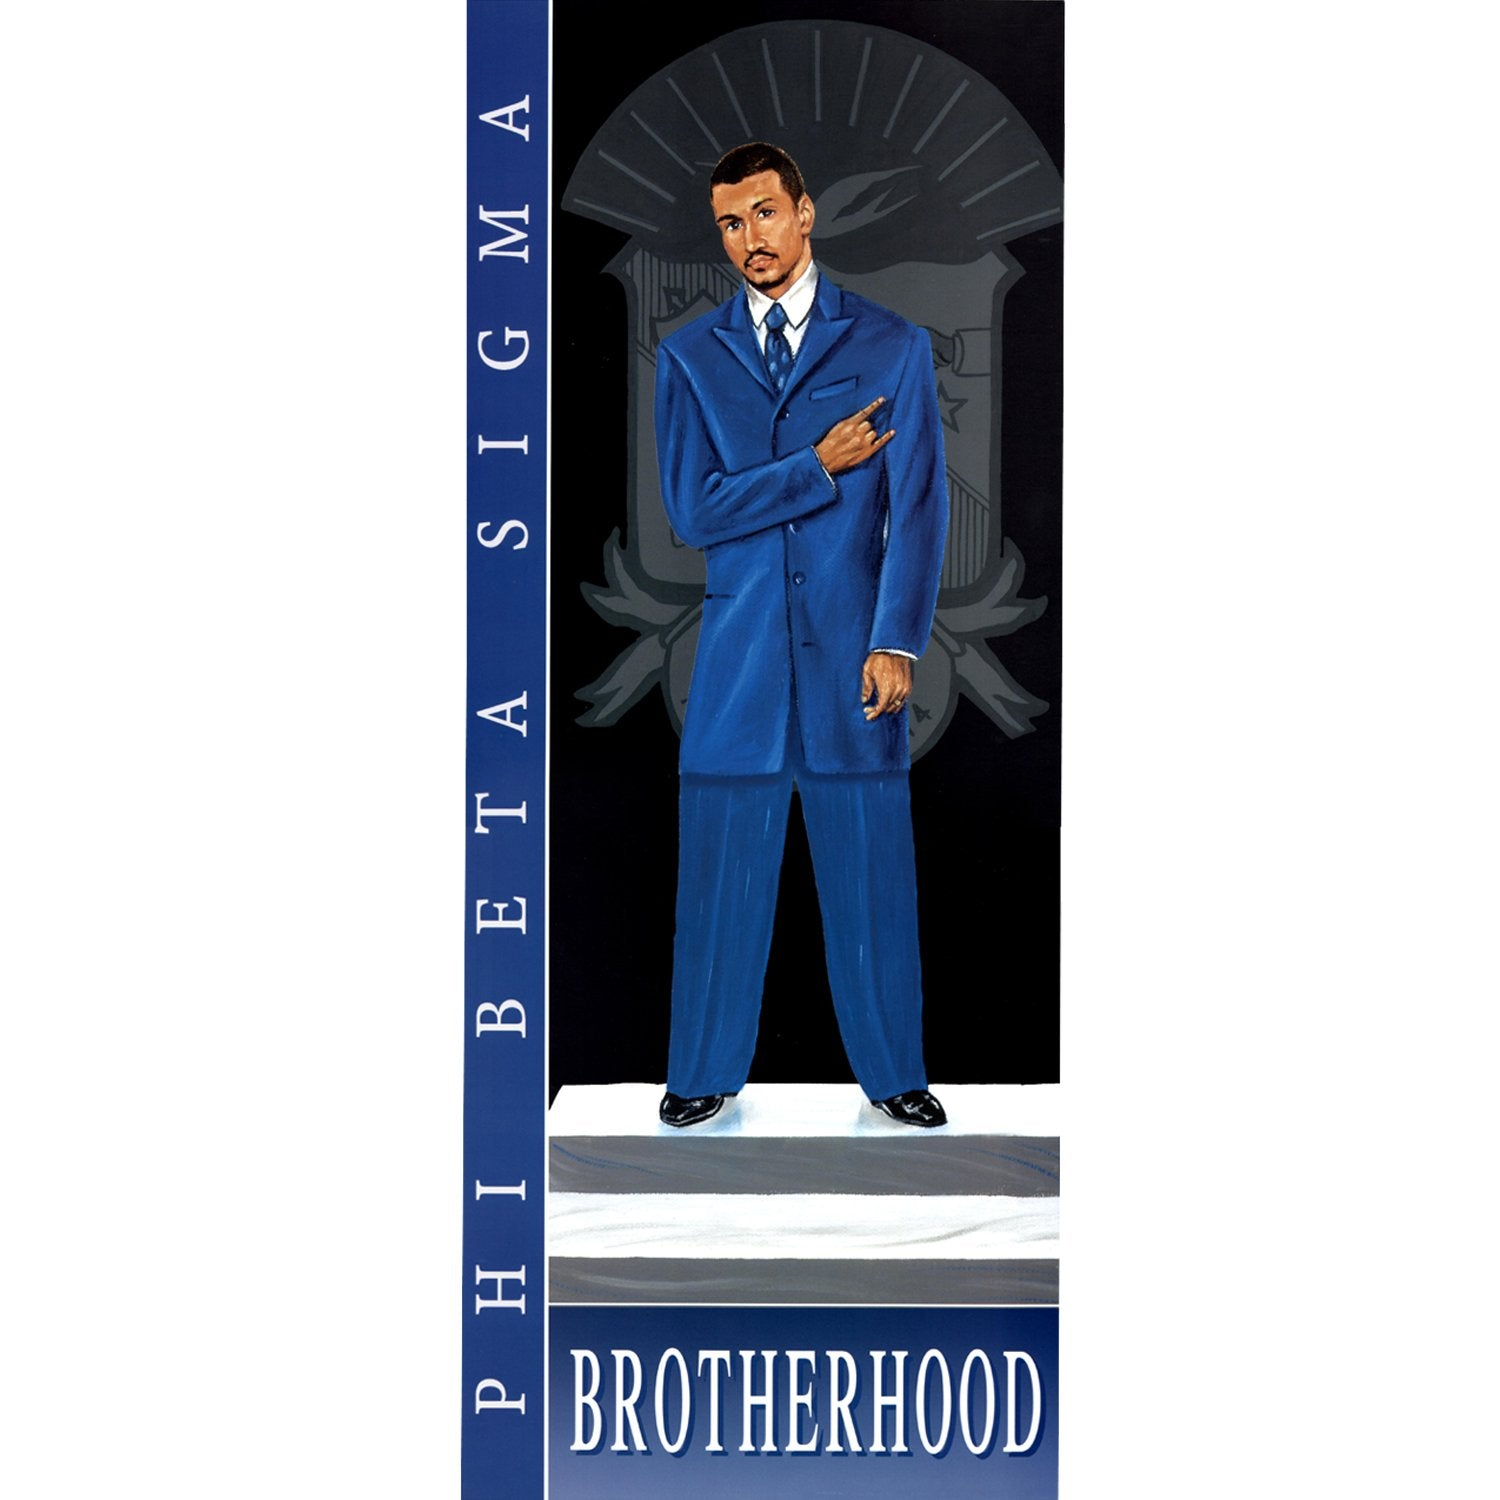 Phi Beta Sigma: Brotherhood by Johny Myers